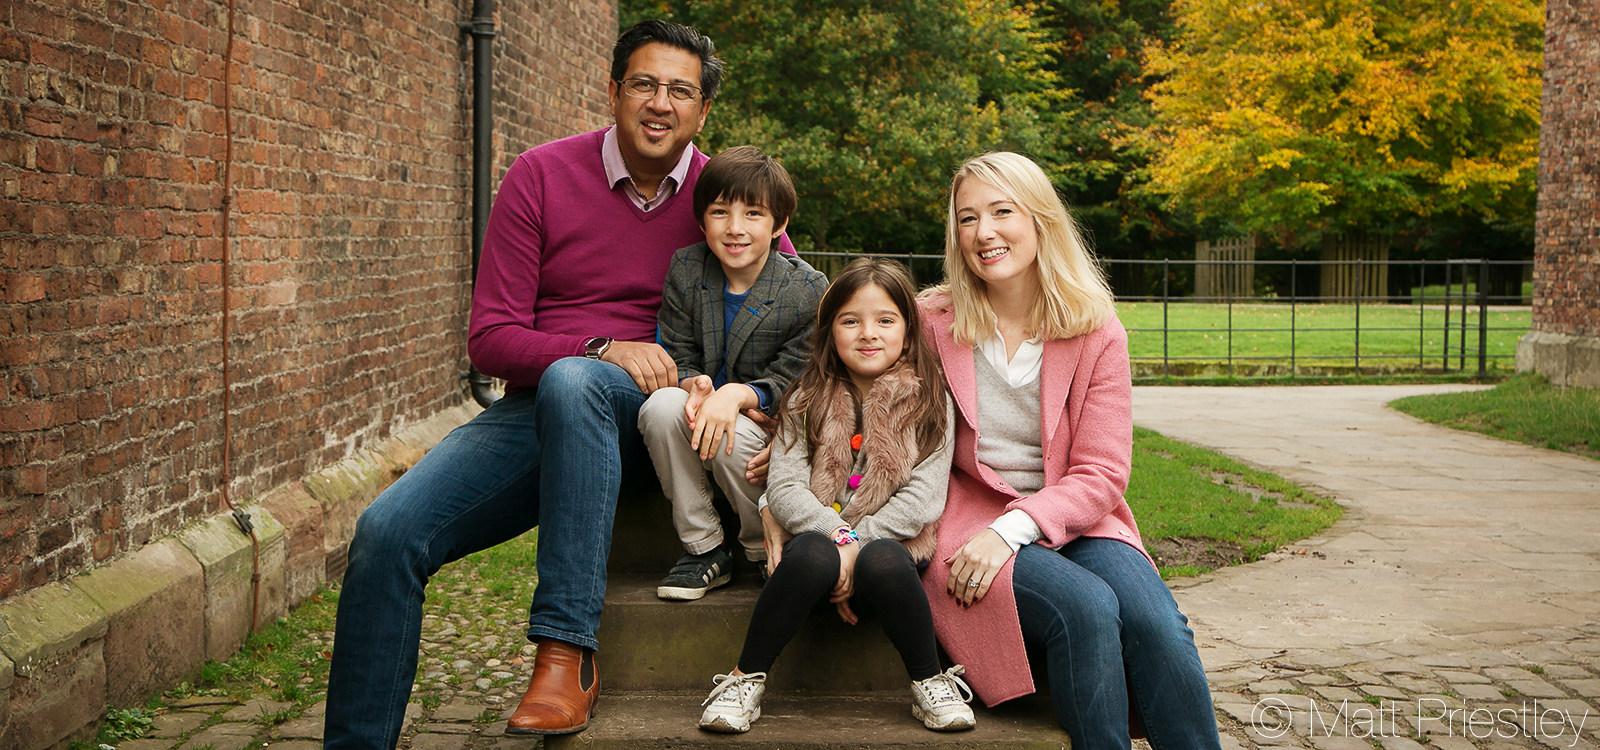 Family-portrait-photography-nr-Altrincham-by-local-photographer-Matt-Priiestley-5-1